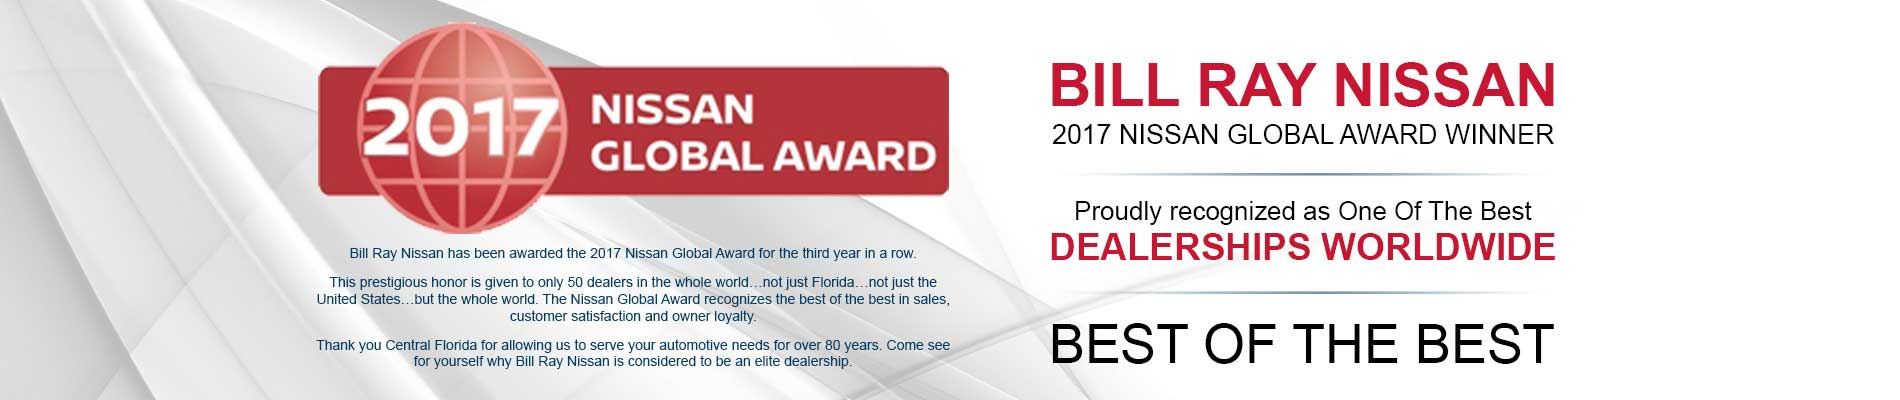 2017-nissan-global-award-red.jpg